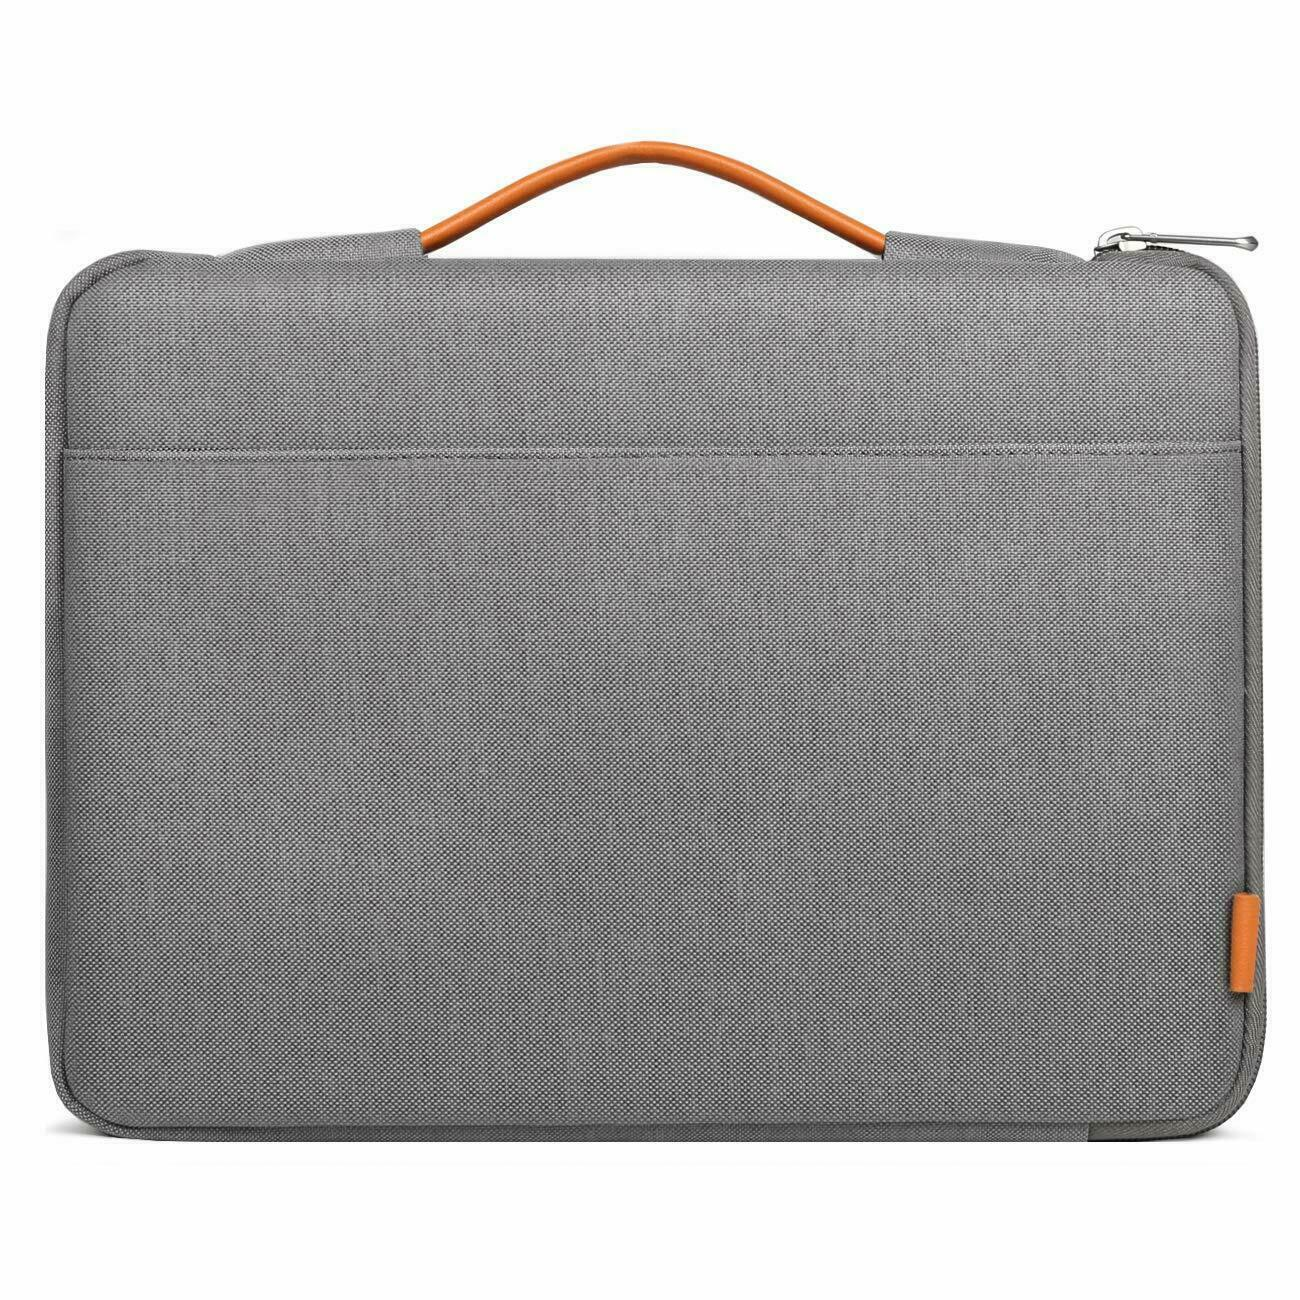 Inateck 13 inch Laptop Sleeve Case for MacBook Pro 2020/2019